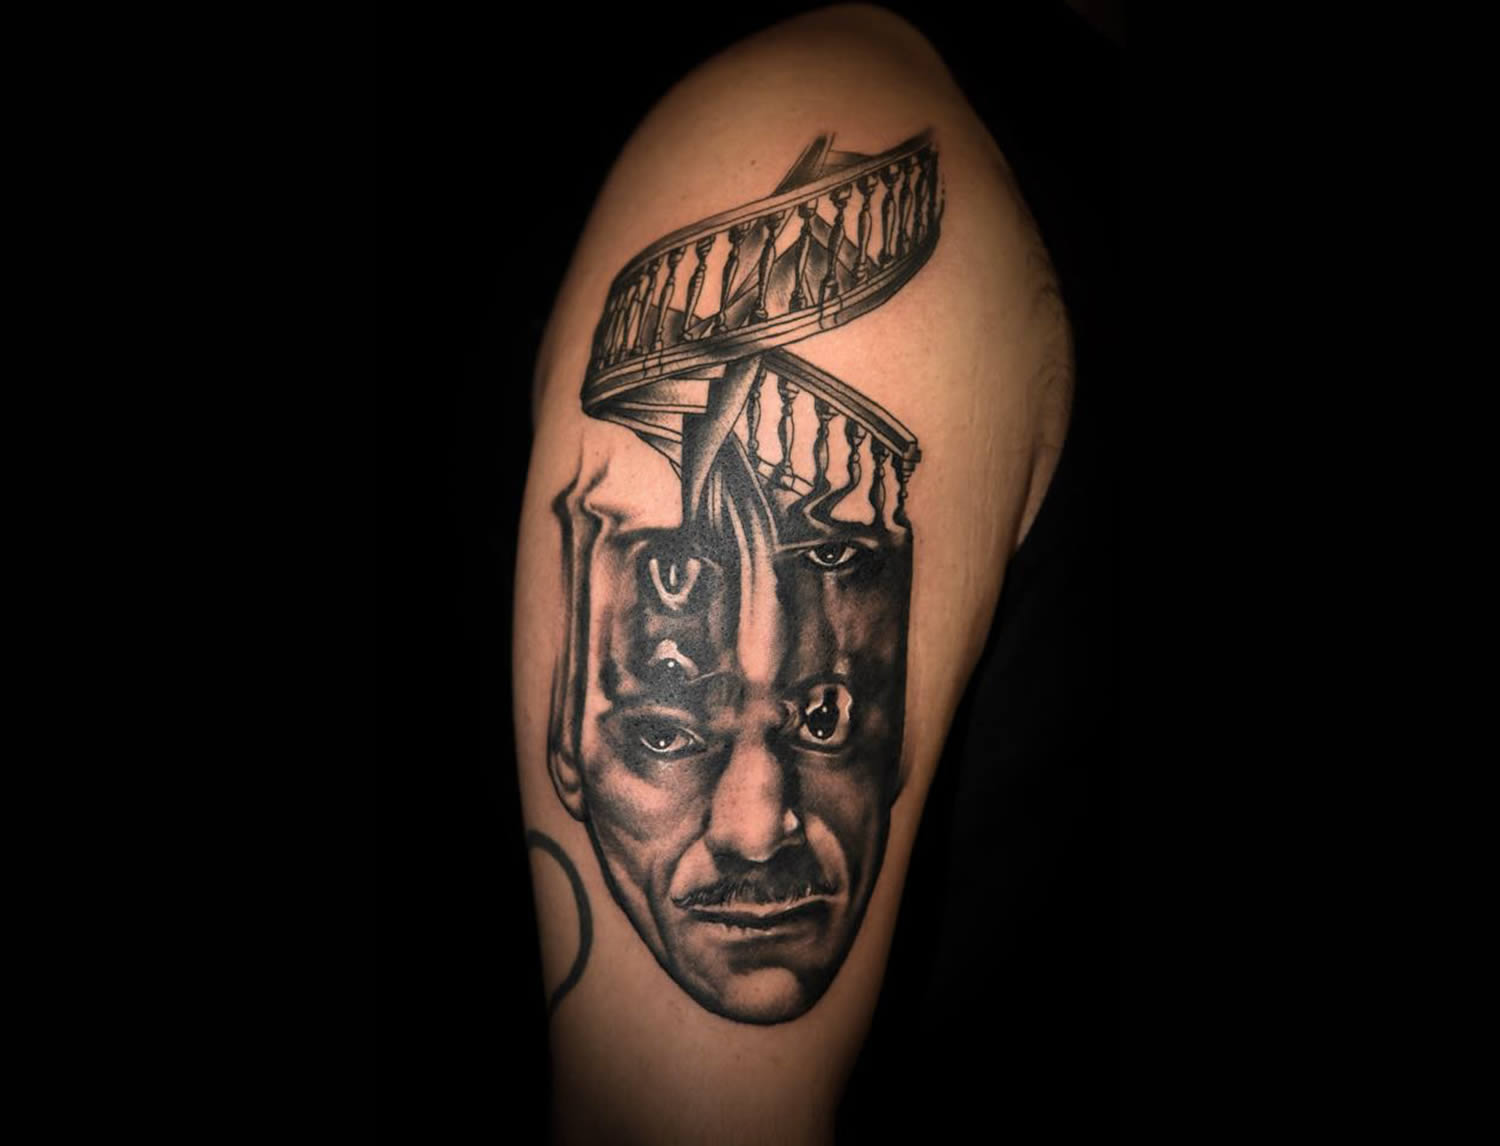 staircase head man, melting man tattoo